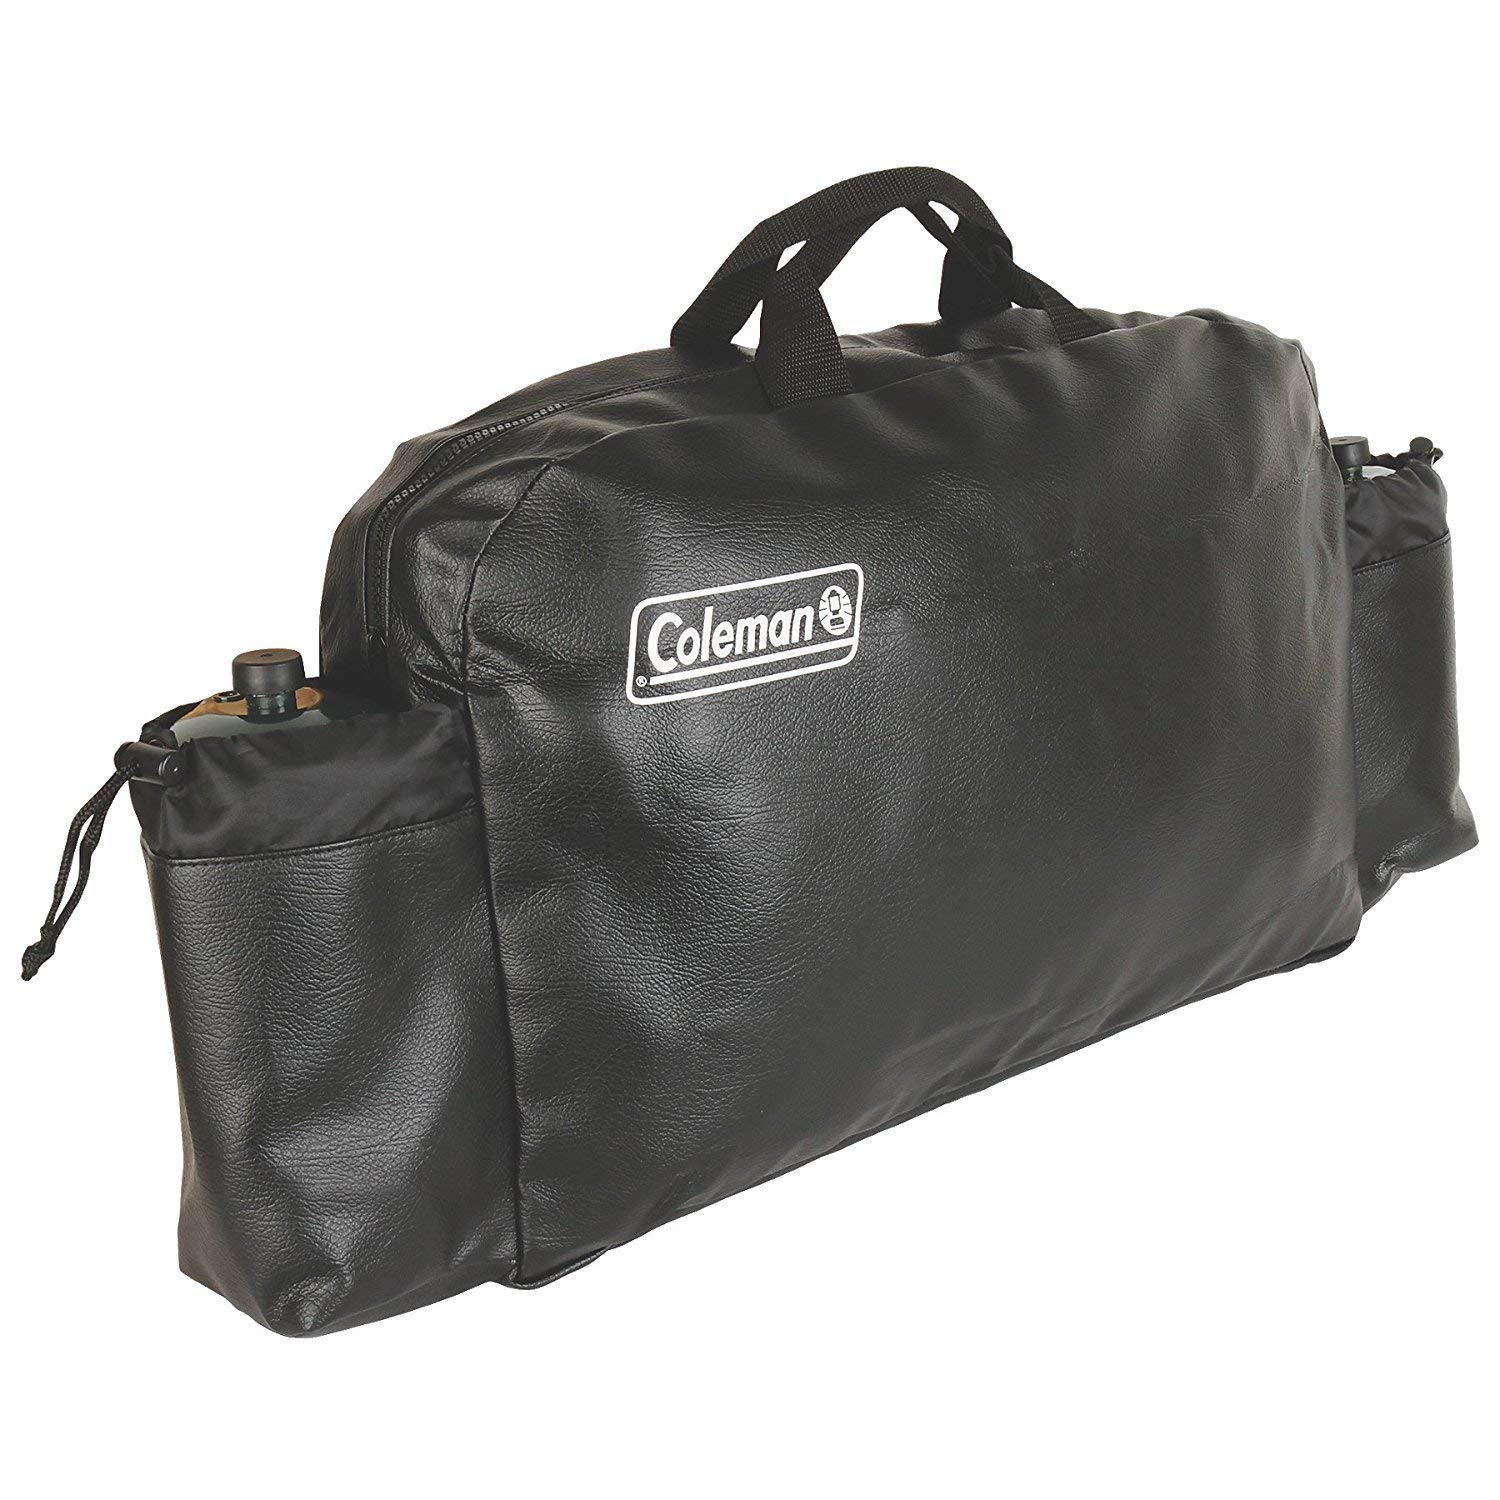 Coleman Camp Stove Carry Case, Medium (2 Pack, N/A) by Coleman